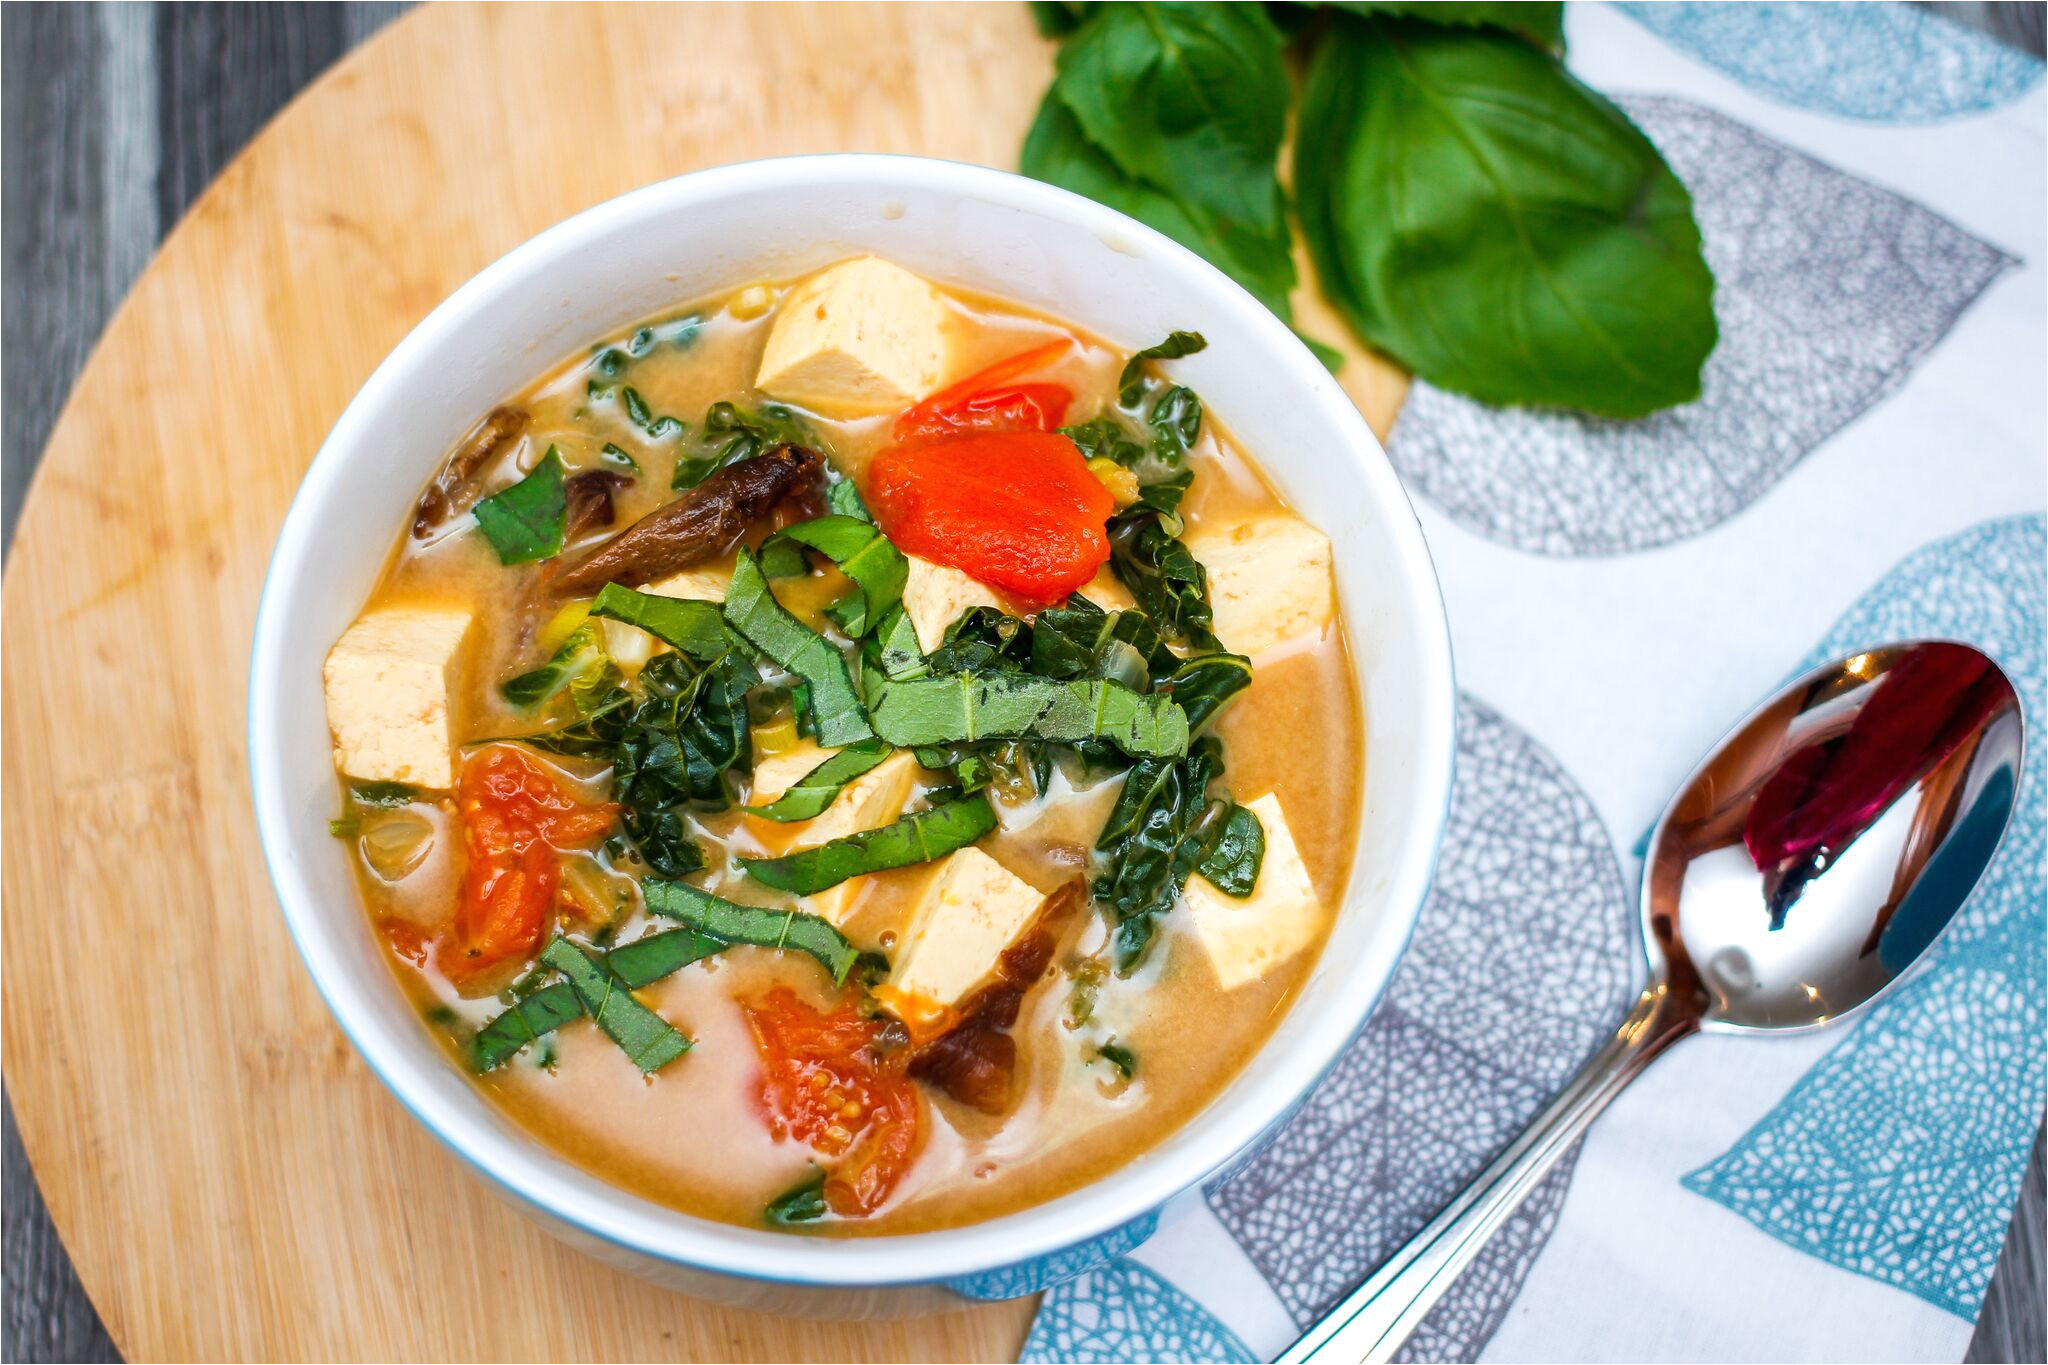 vegetarian tom yum soup 3217762 7jpg 8 preview 5b05f0283418c6003f14ab1f jpeg